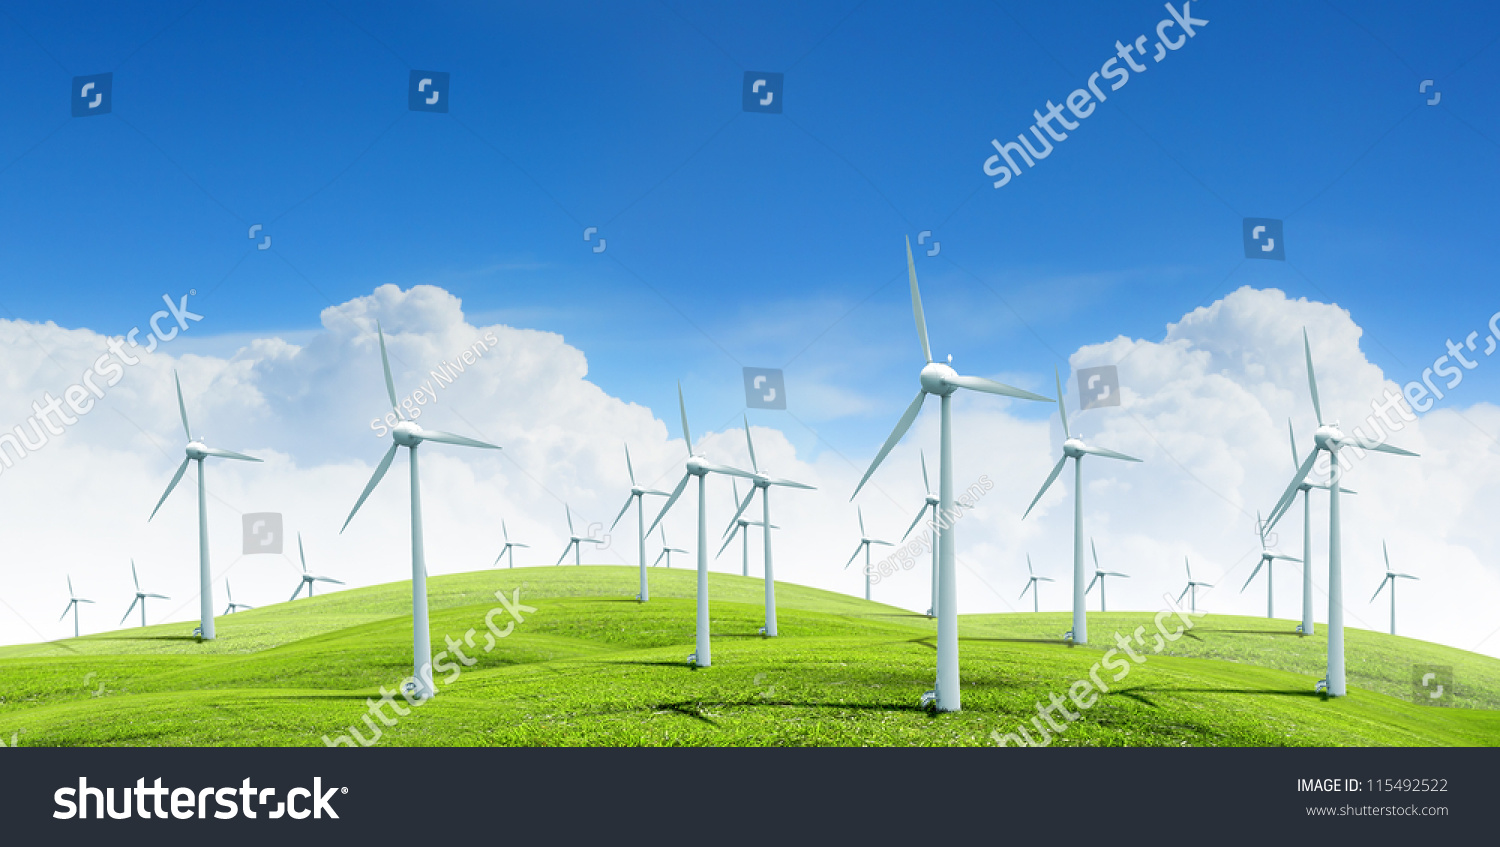 Alternative Energy Group 113